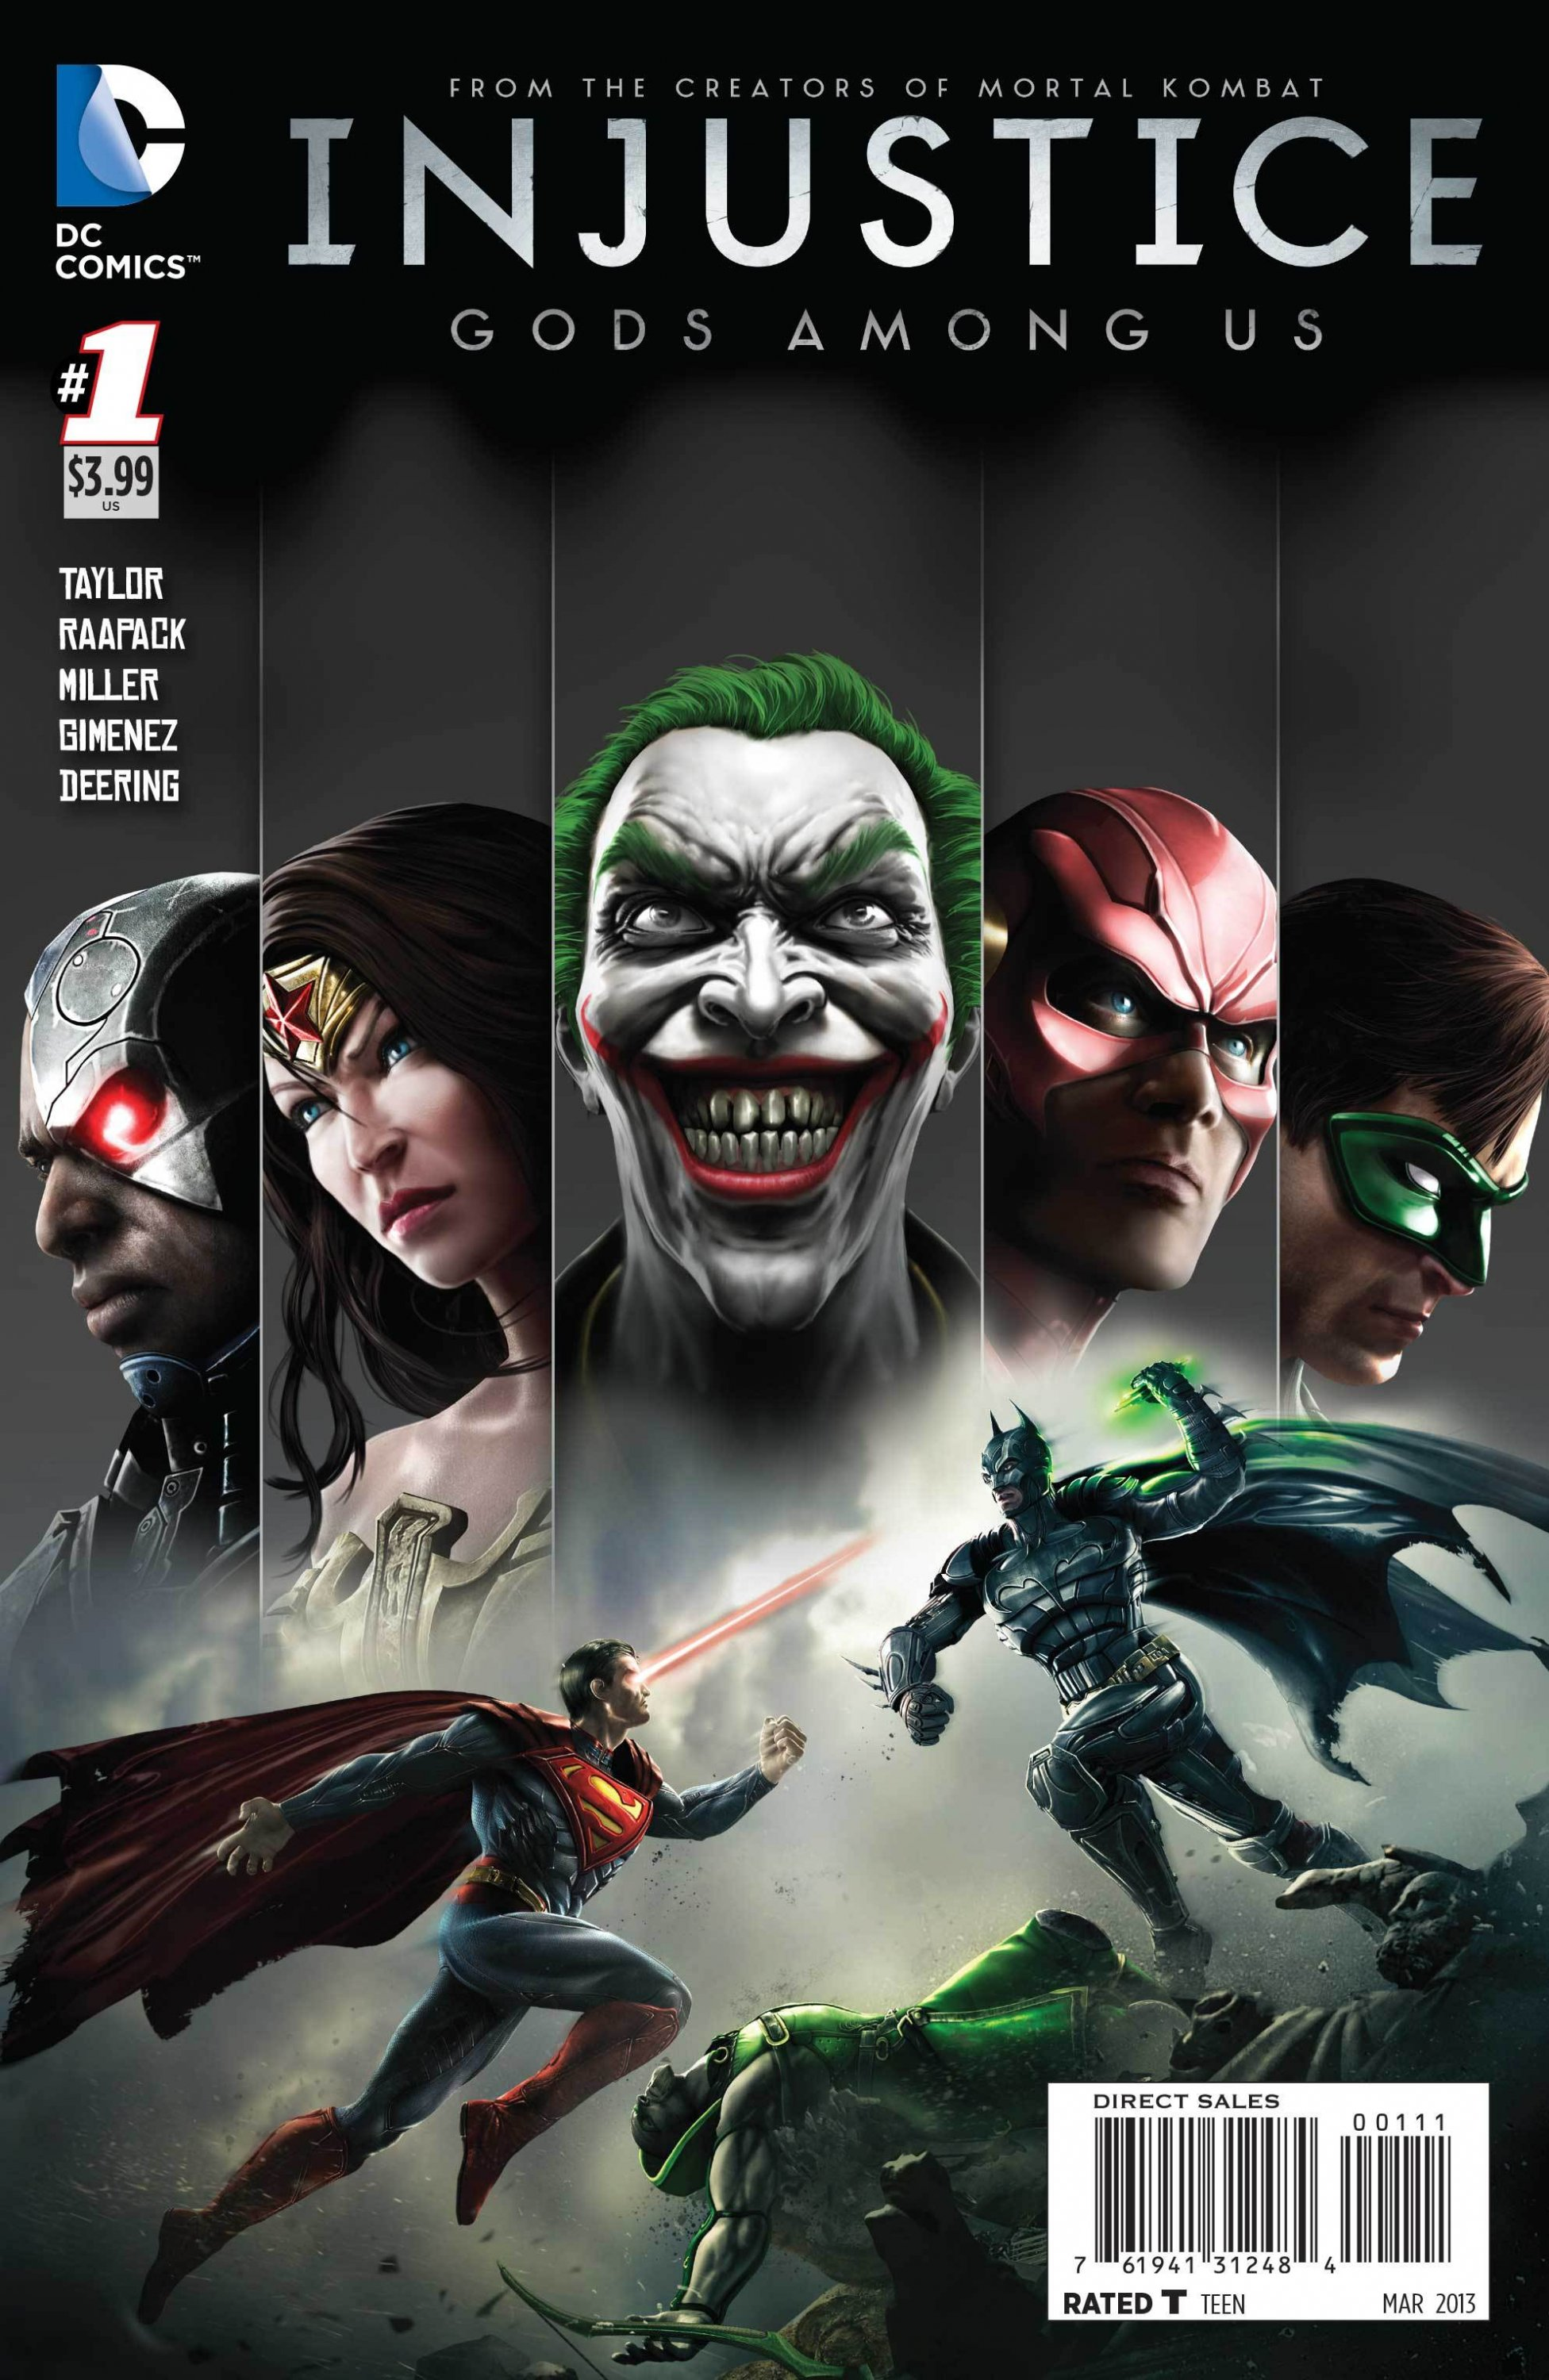 Injustice: Gods Among Us 001 (March 2013) (2nd print)